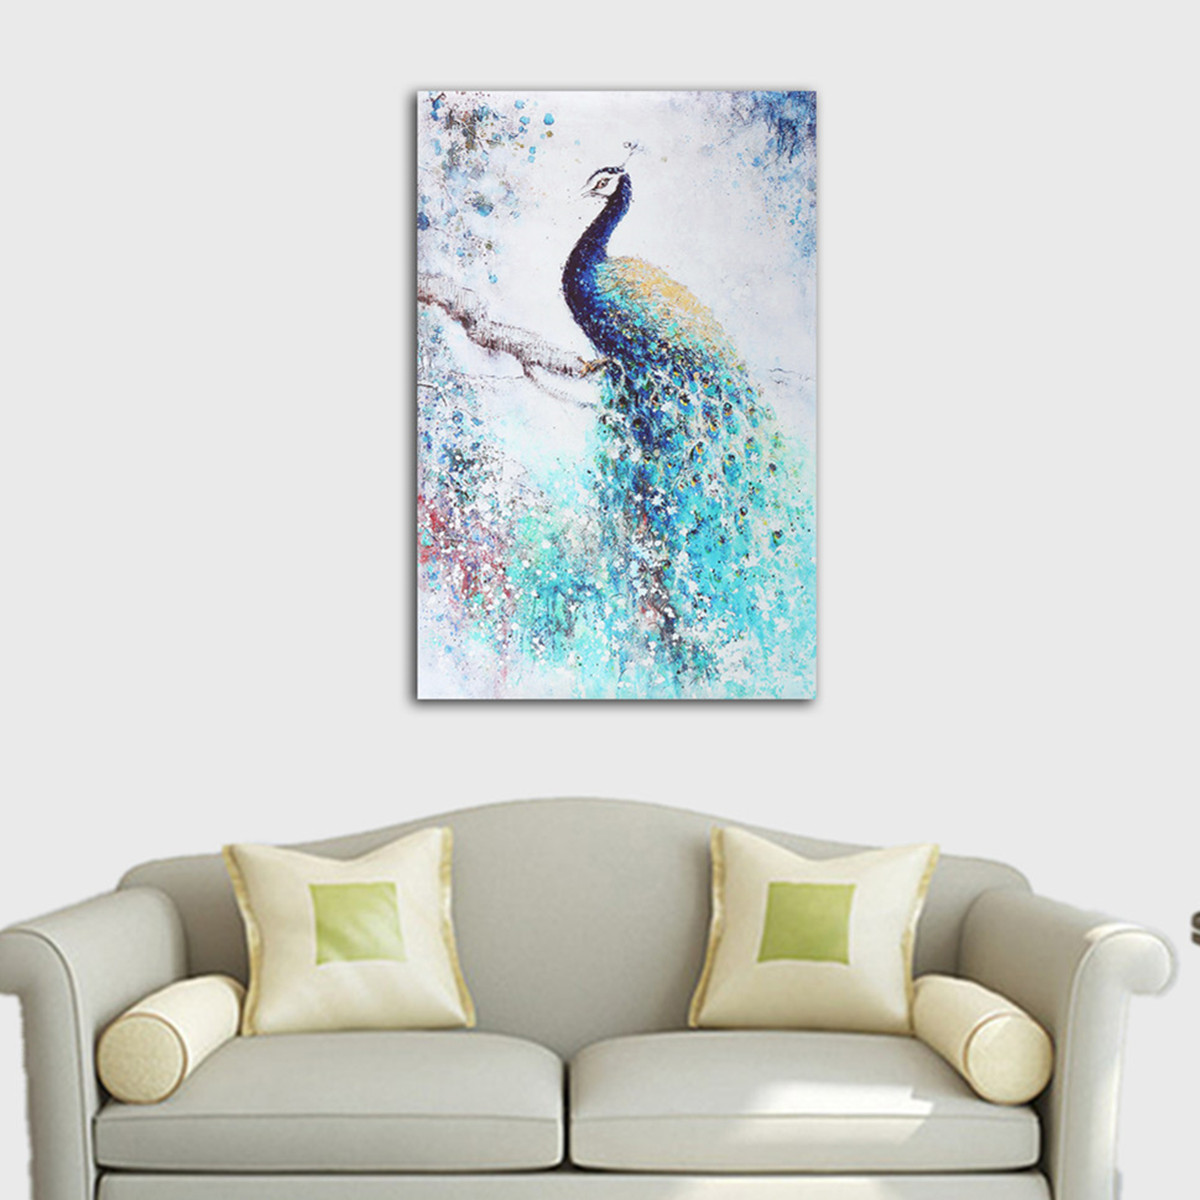 16''x24'' Unframed Print Canvas Wall Peacock Painting Picture Wall Hanging Home Living Room Art Decor Ornament